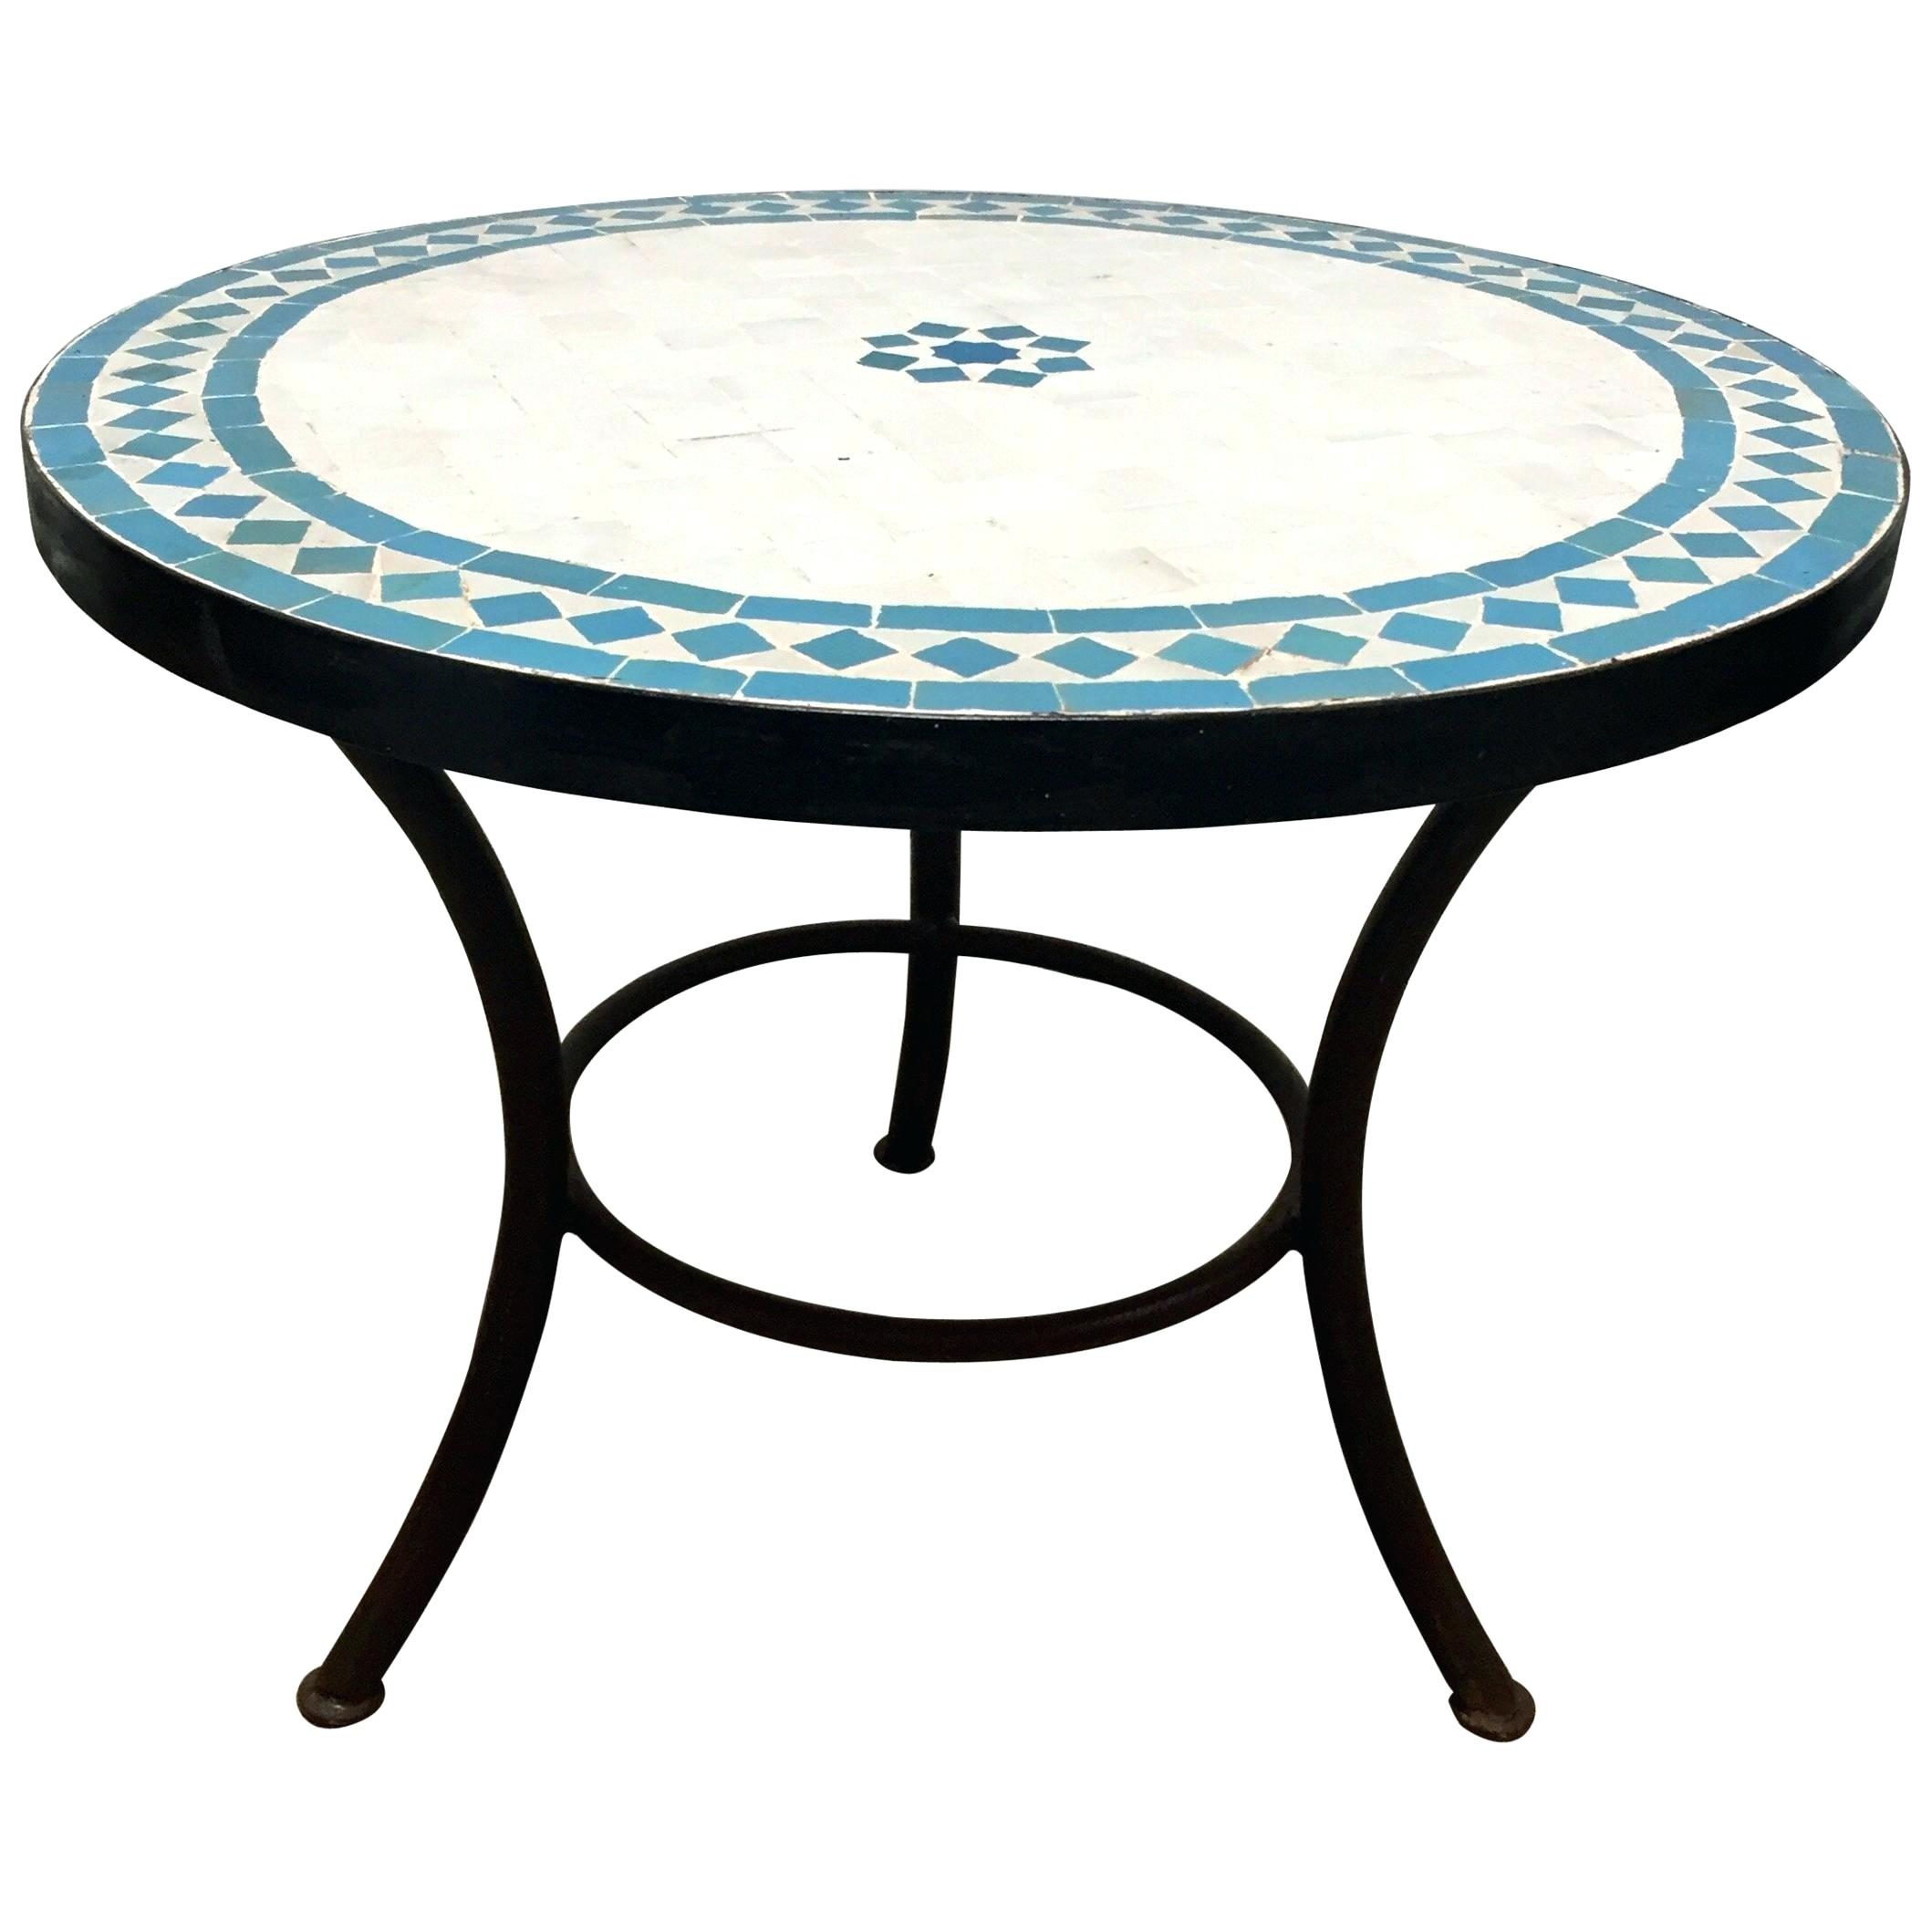 mosaic outdoor table hostbuz info tile side low iron base for set accent west elm marble console dining room sets cymbal bag drop leaf kitchen and chairs with wheels garden